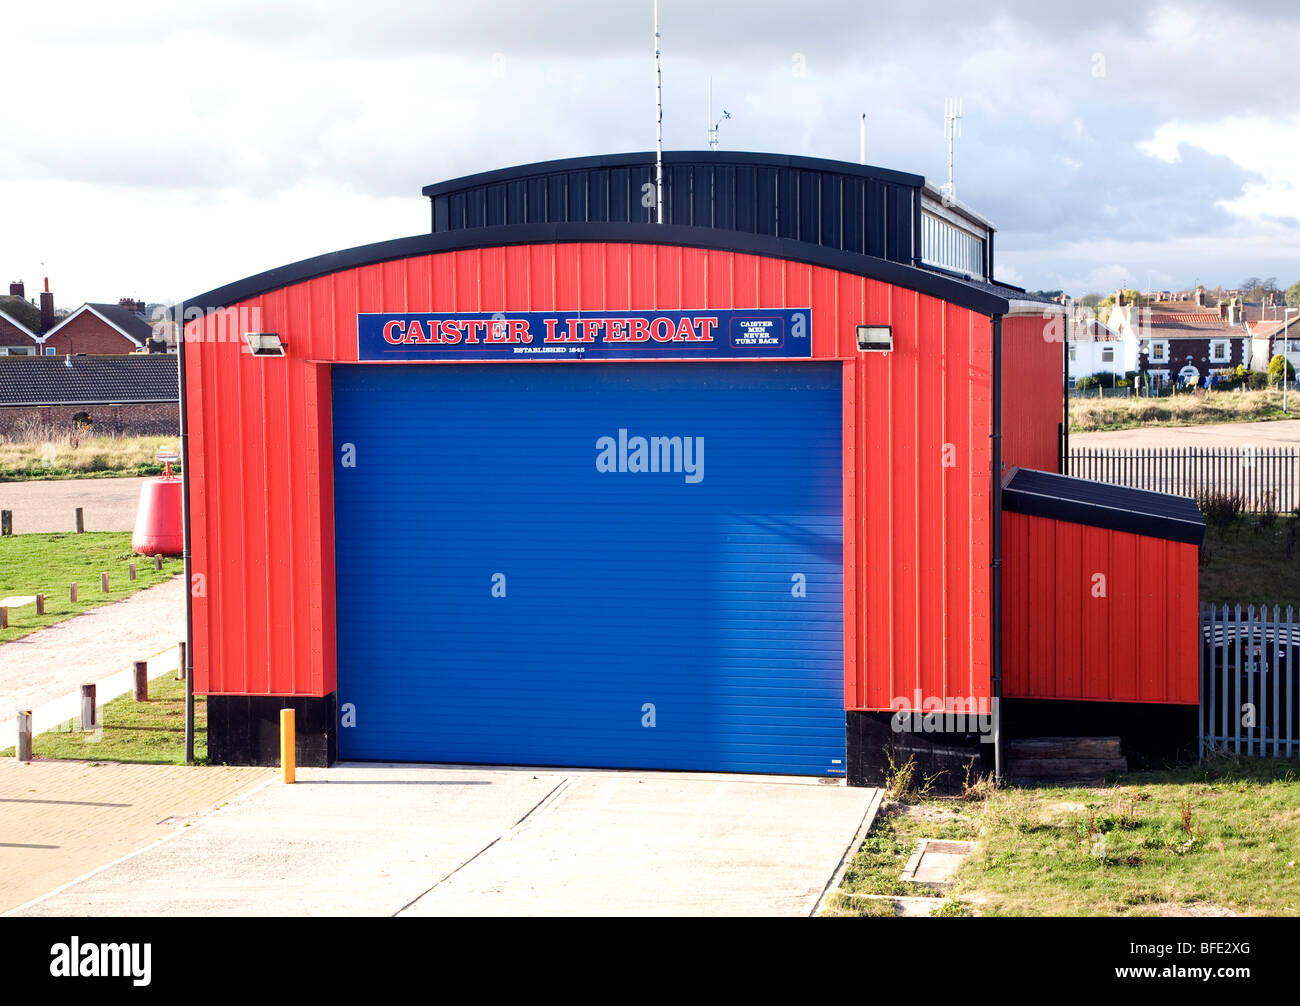 Caister lifeboat station, Caister, Norfolk, England Stock Photo